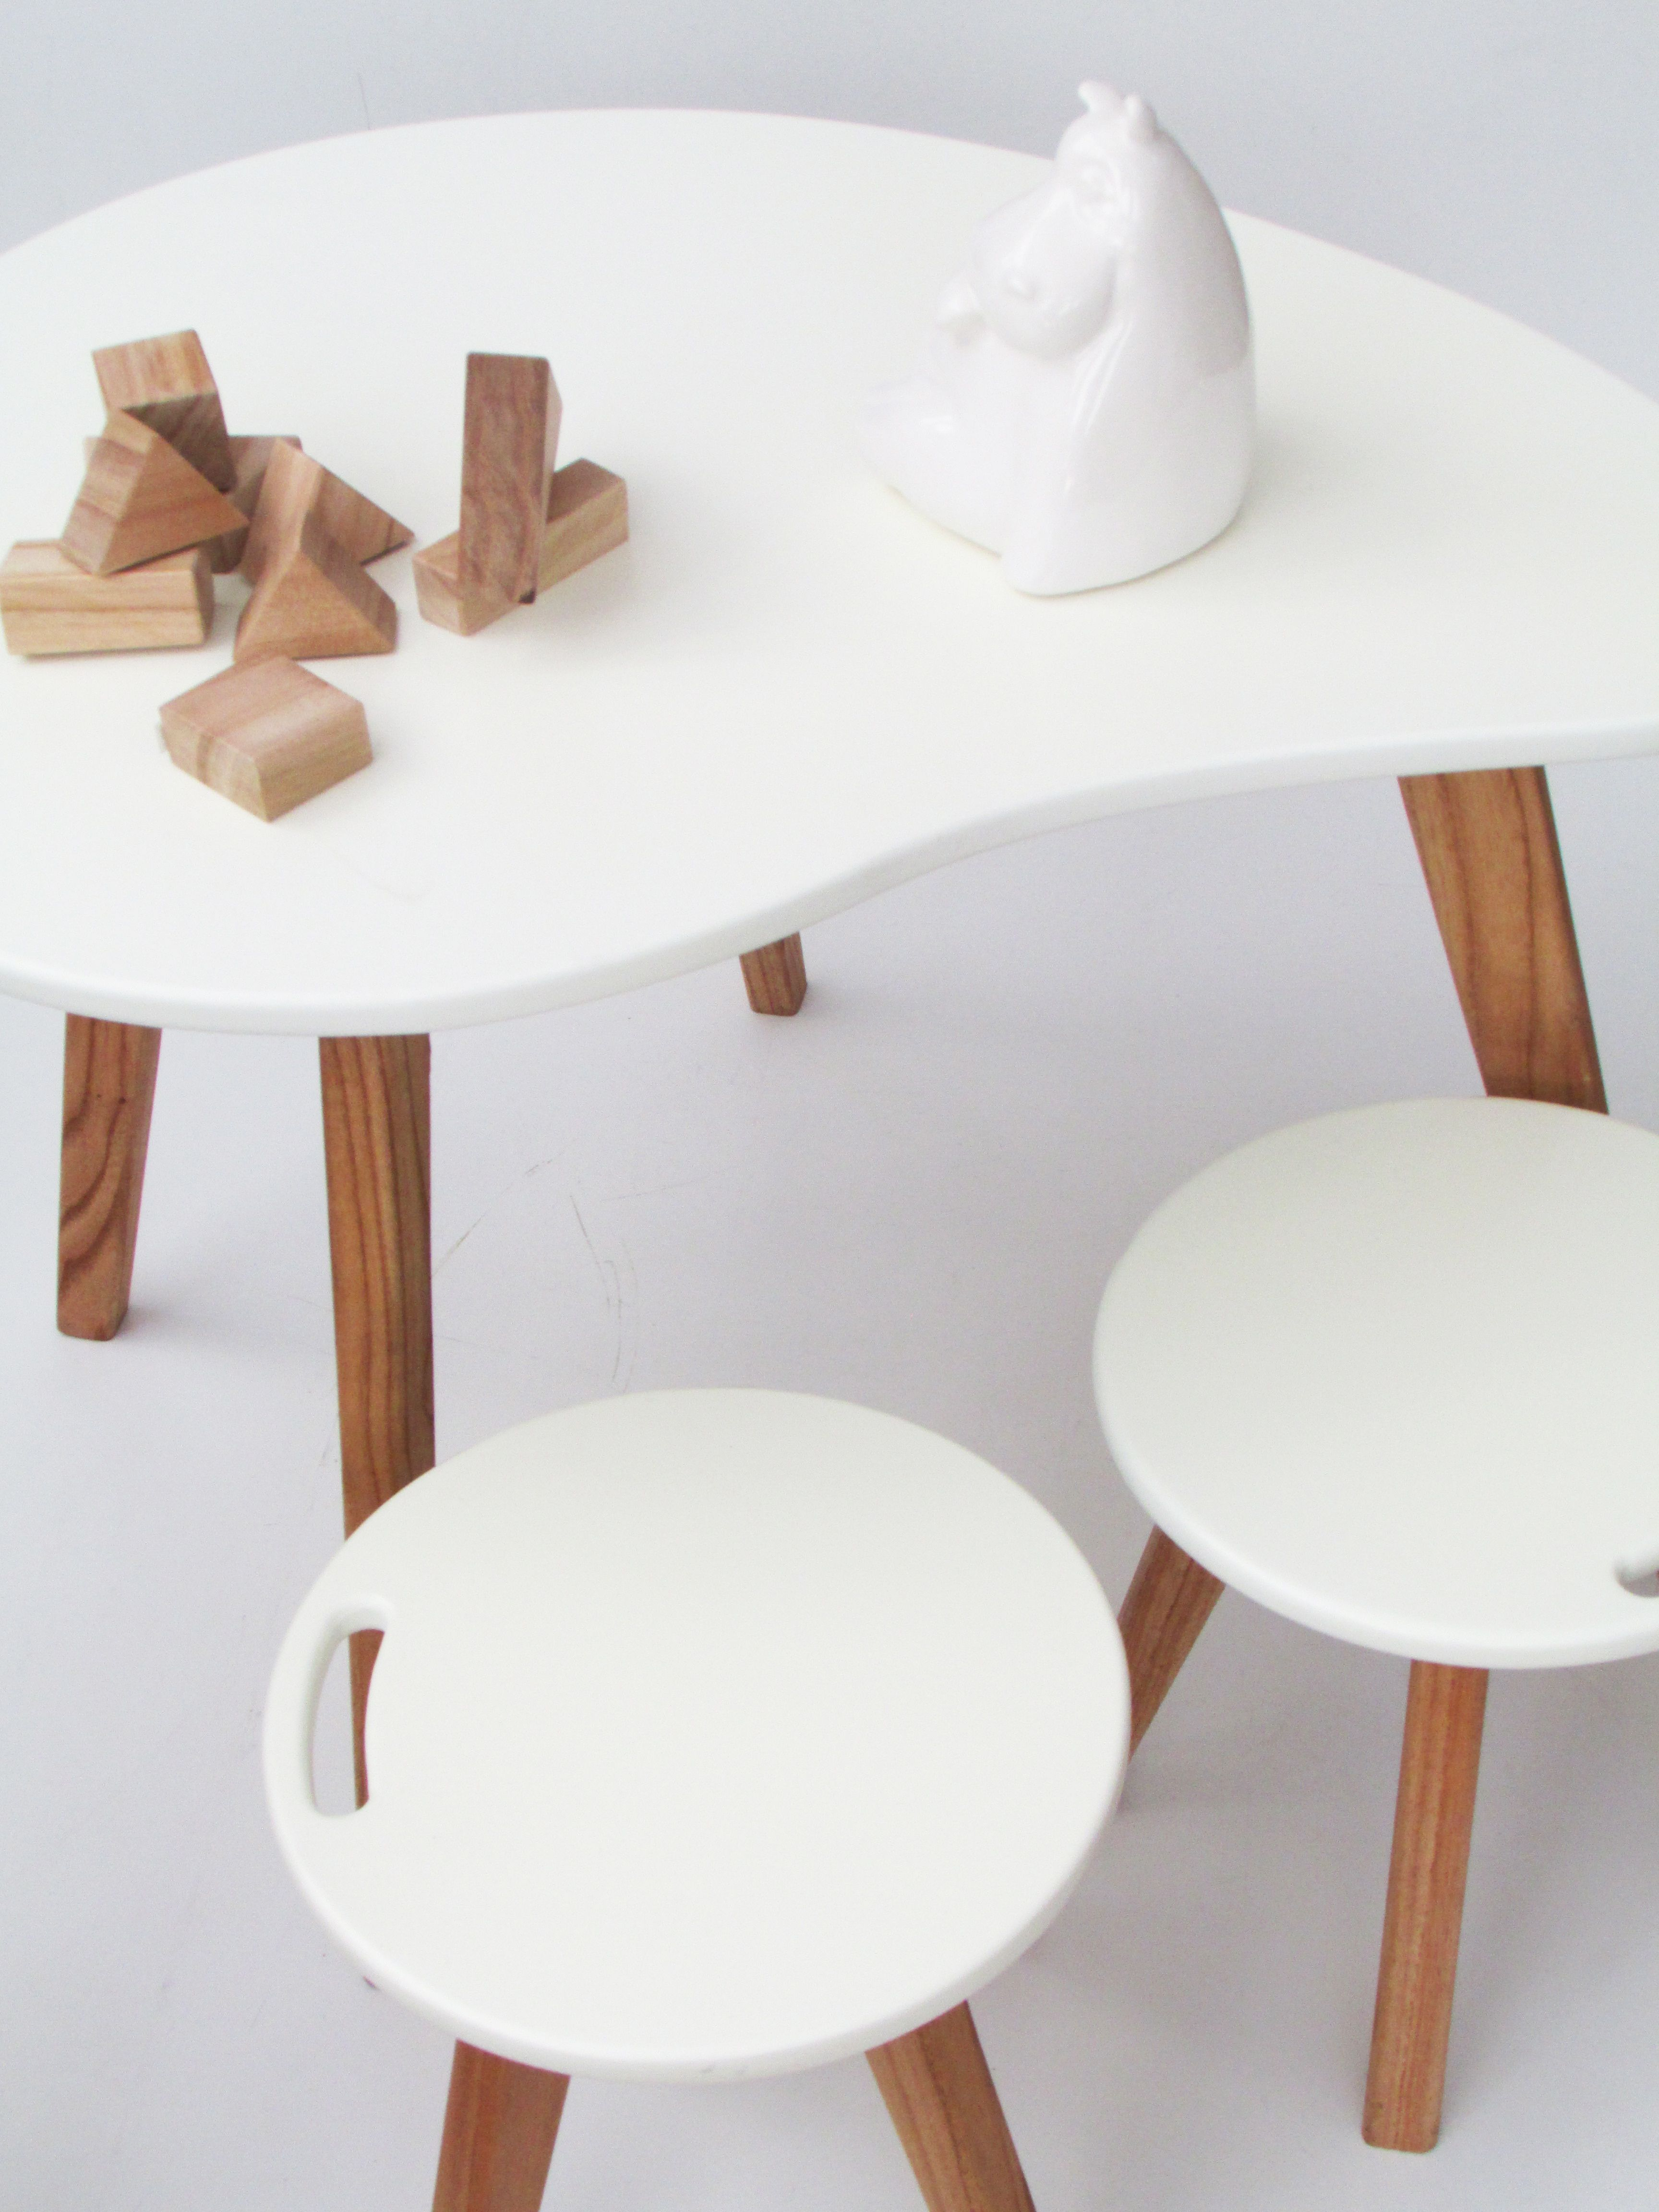 Sillas Infantiles De Madera Table And Chair Bancos Y Sillas Infantiles Pinterest